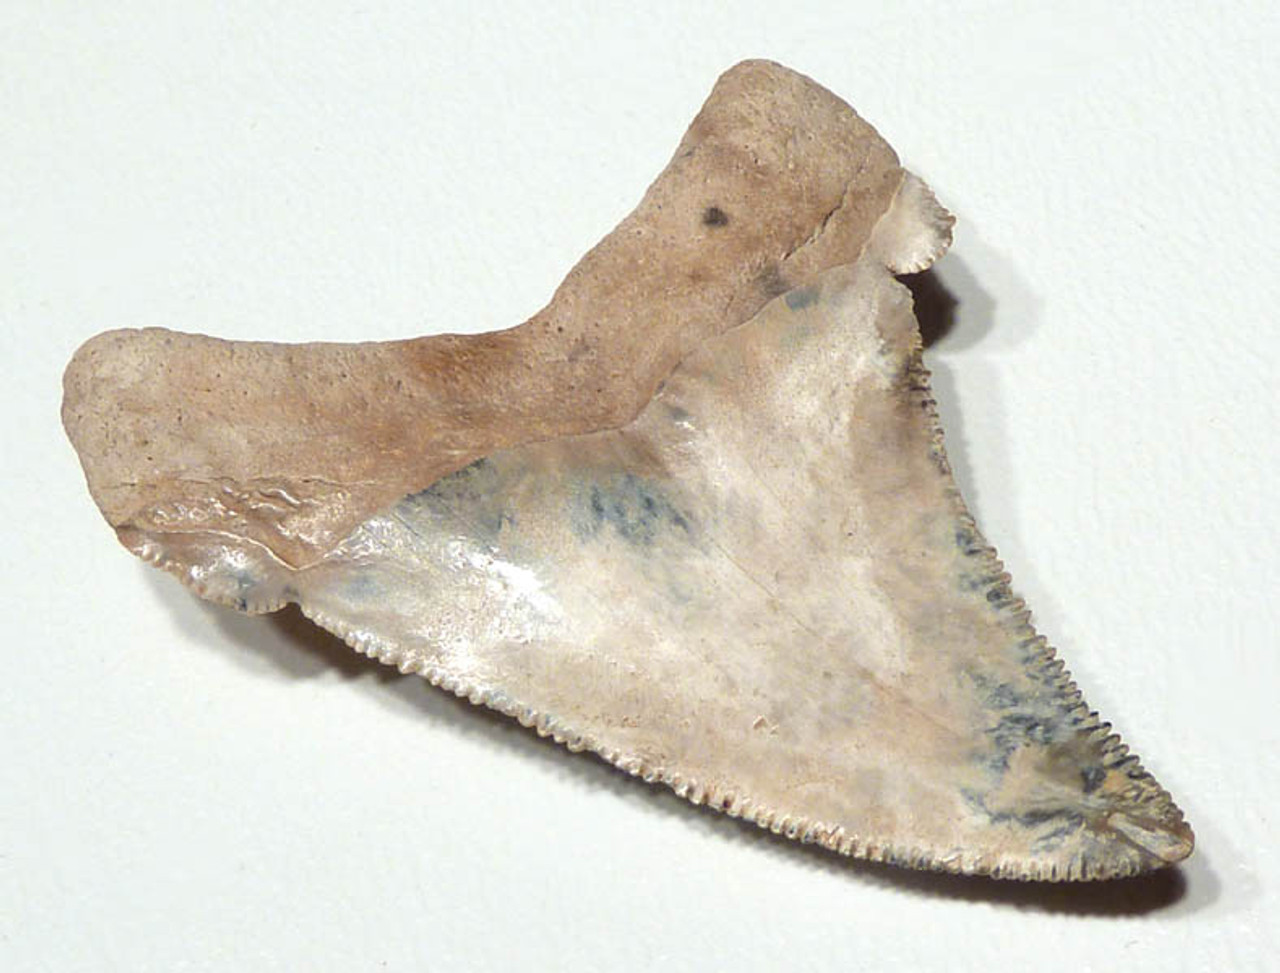 SHX010 - RARE BLUE, GOLD AND WHITE ANGUSTIDENS SHARK TOOTH FROM SUMMERVILLE